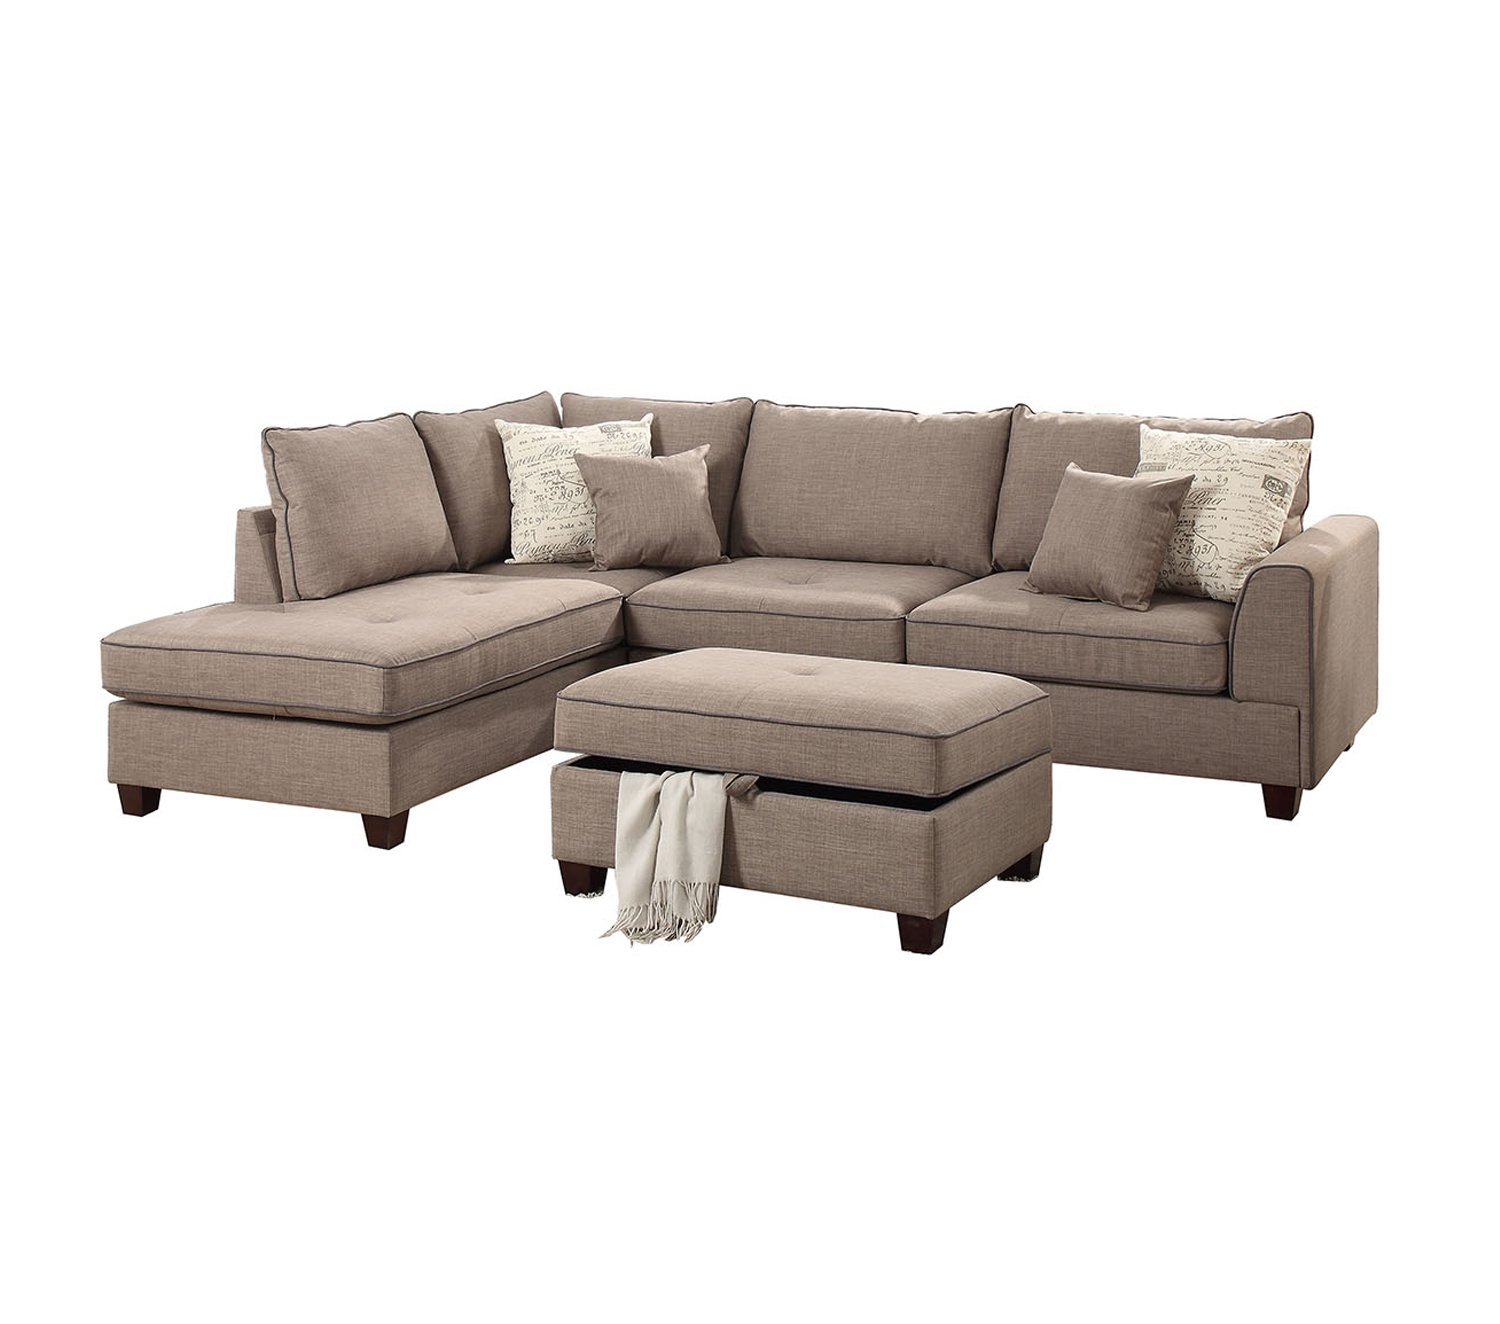 Poundex PDEX- Living Room Chaise Lounges, Mocha by Poundex